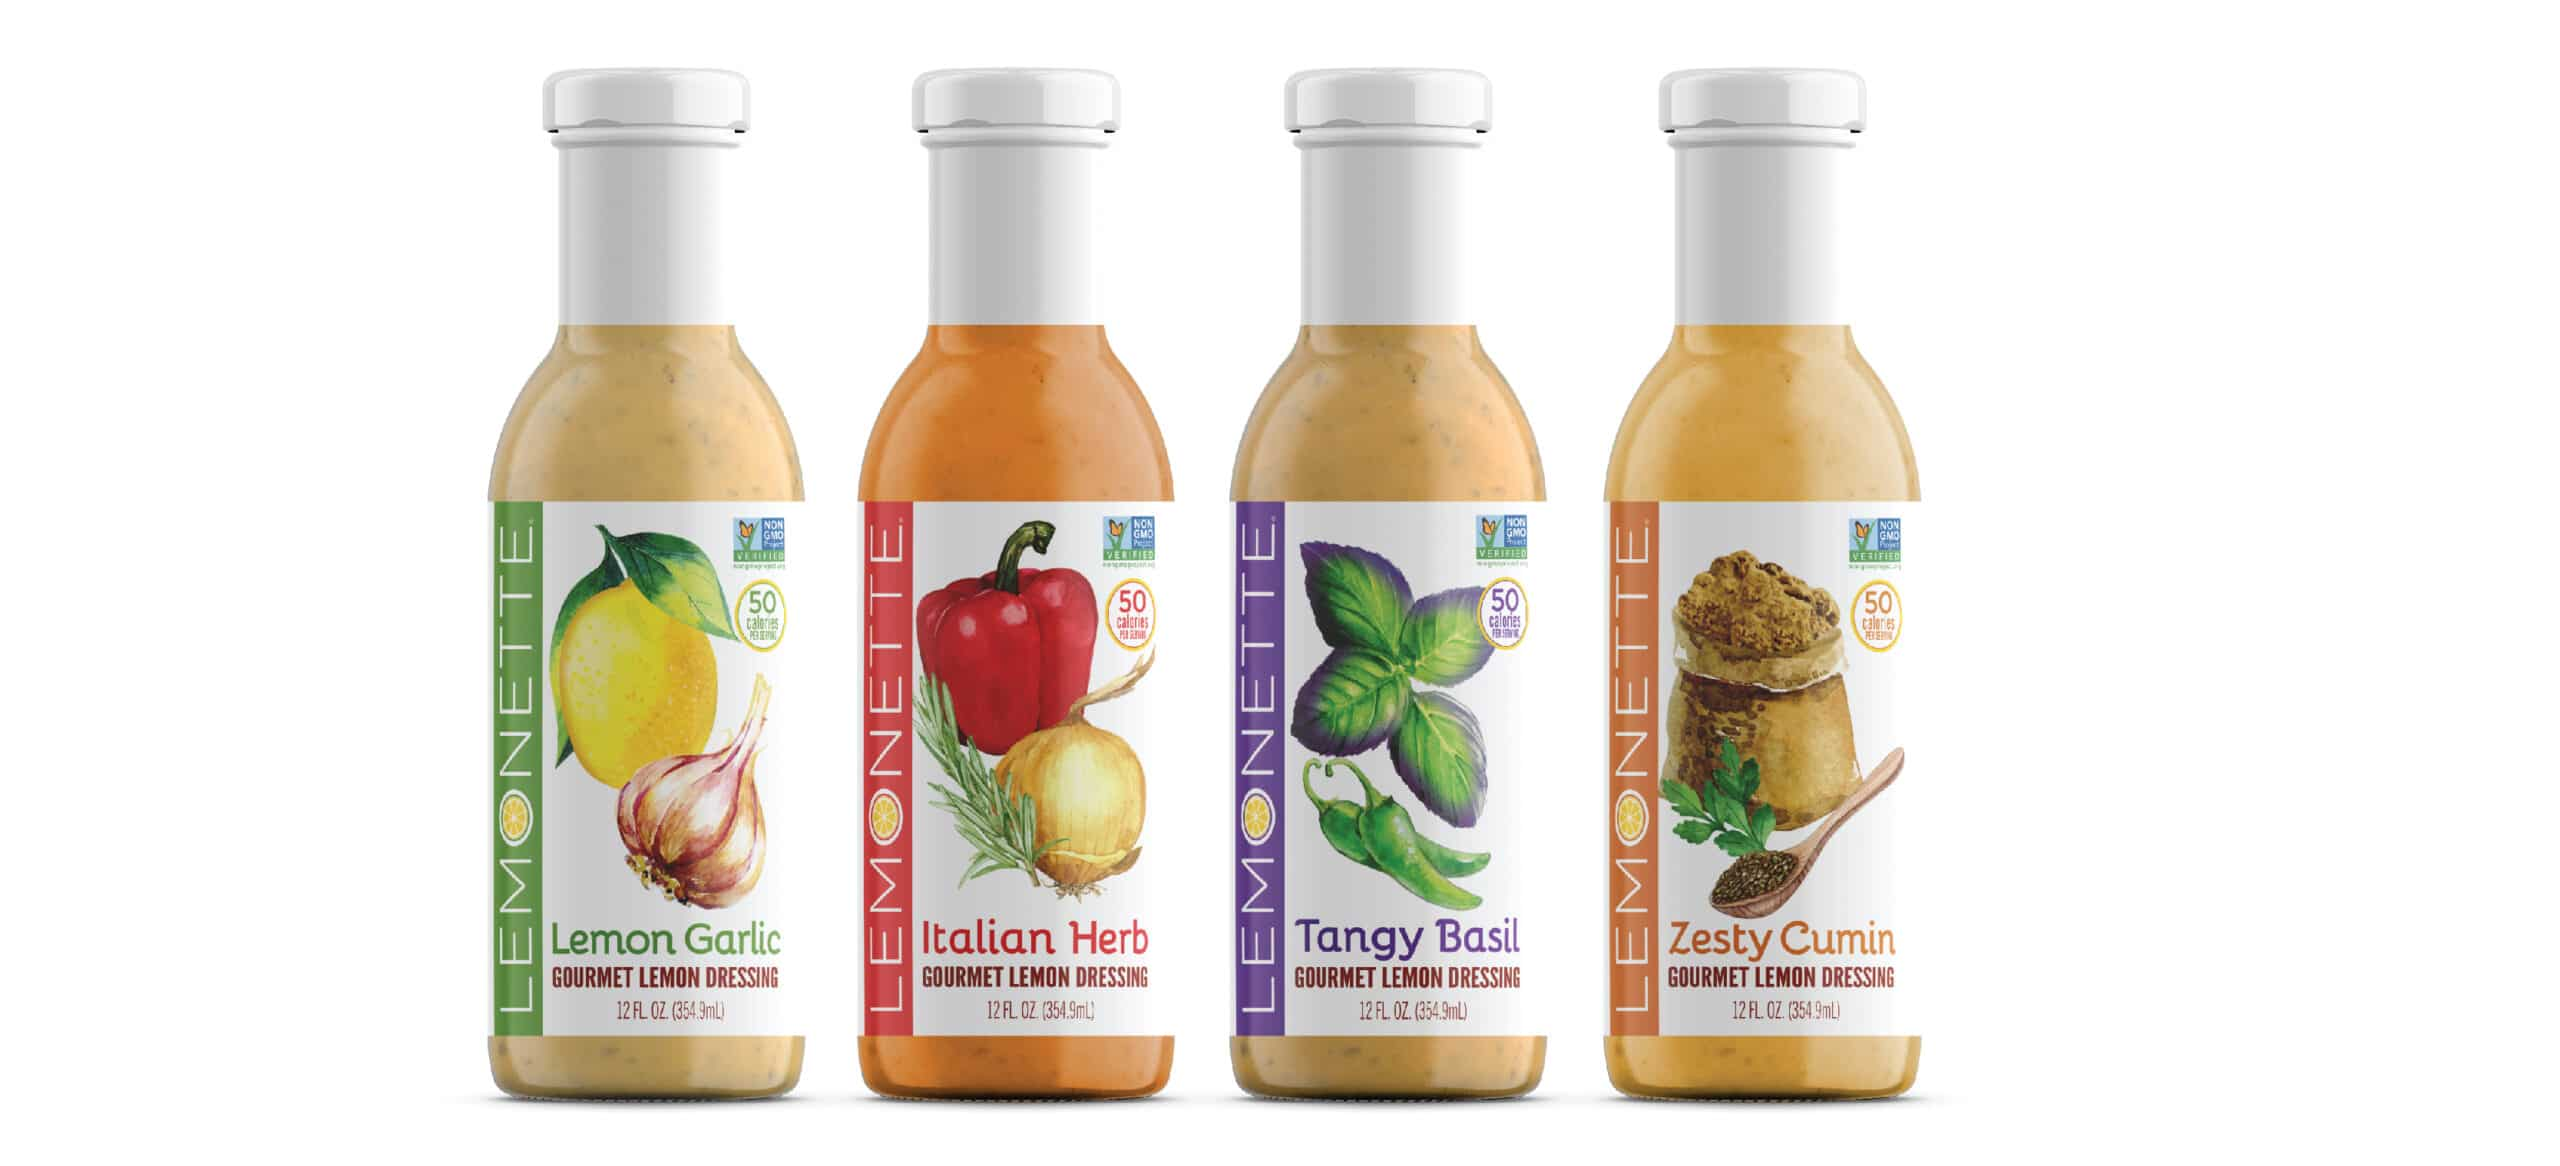 Salad Dressing Bottle Packaging Design